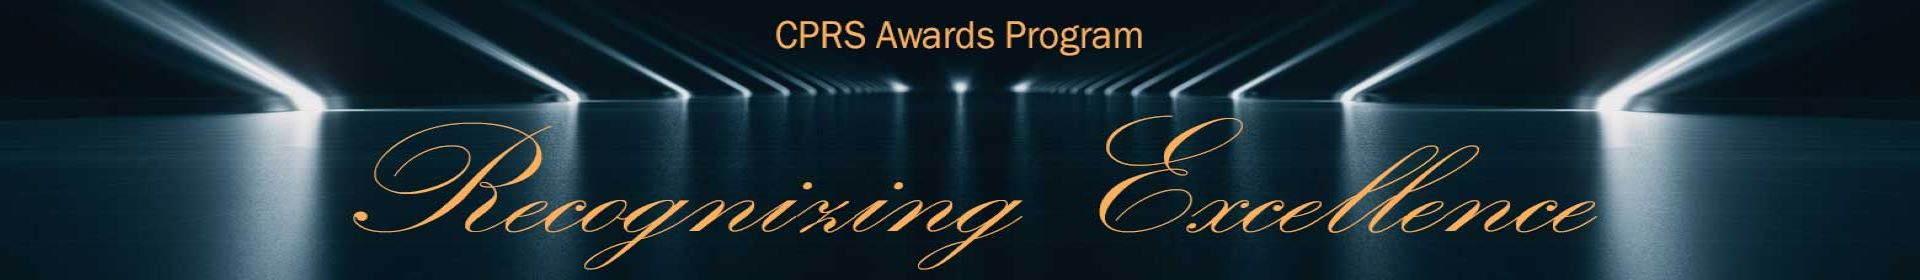 CPRS Awards Program - Recognizing Excellence